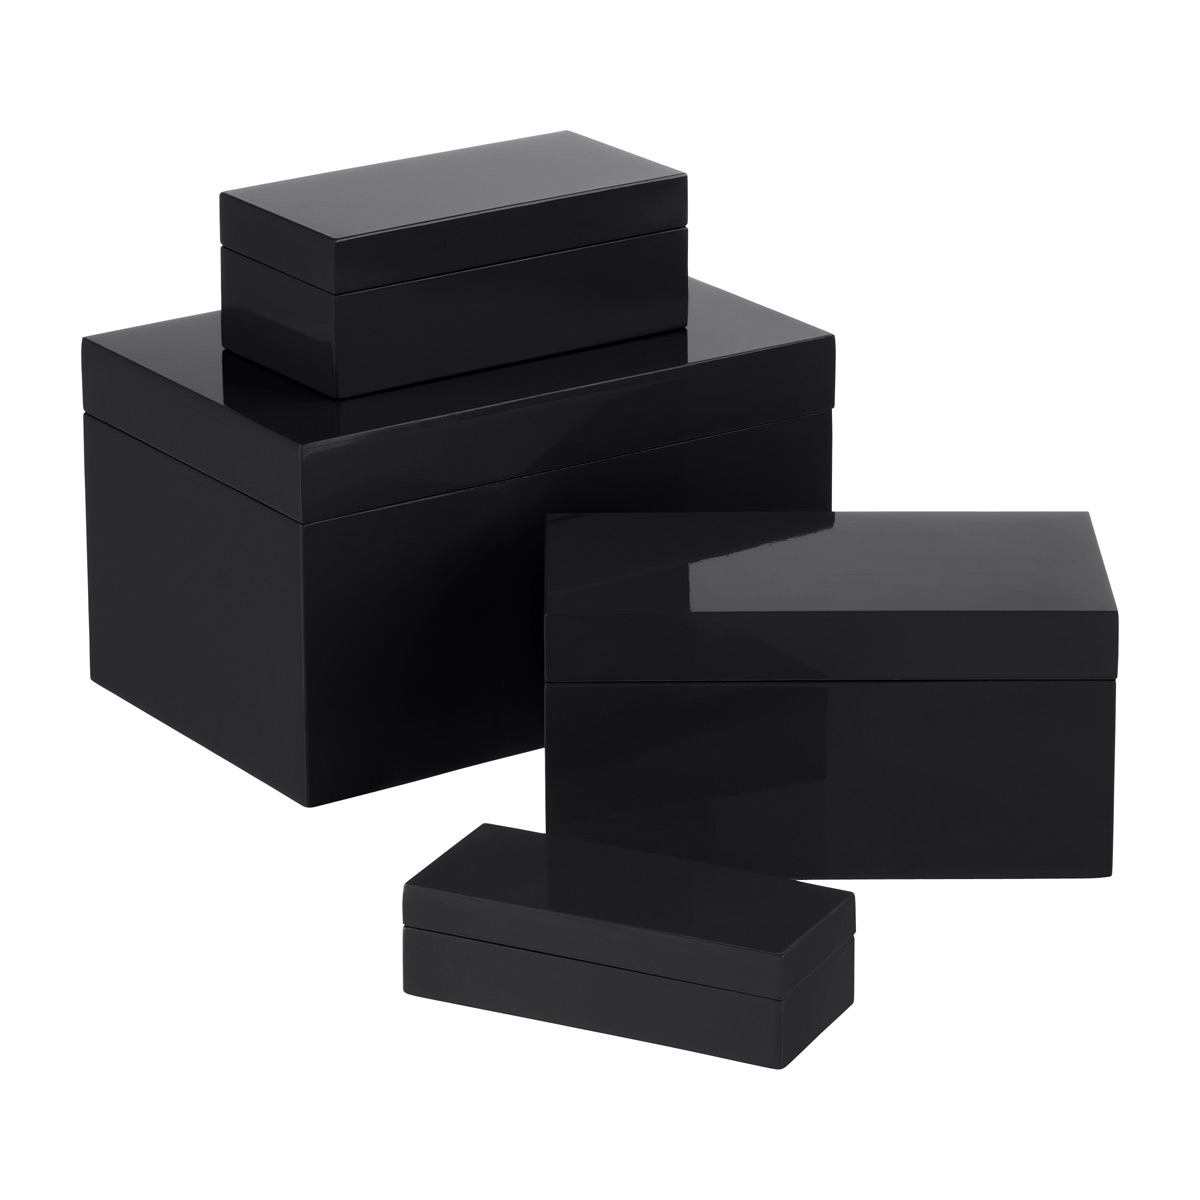 Black Lacquered Storage Boxes